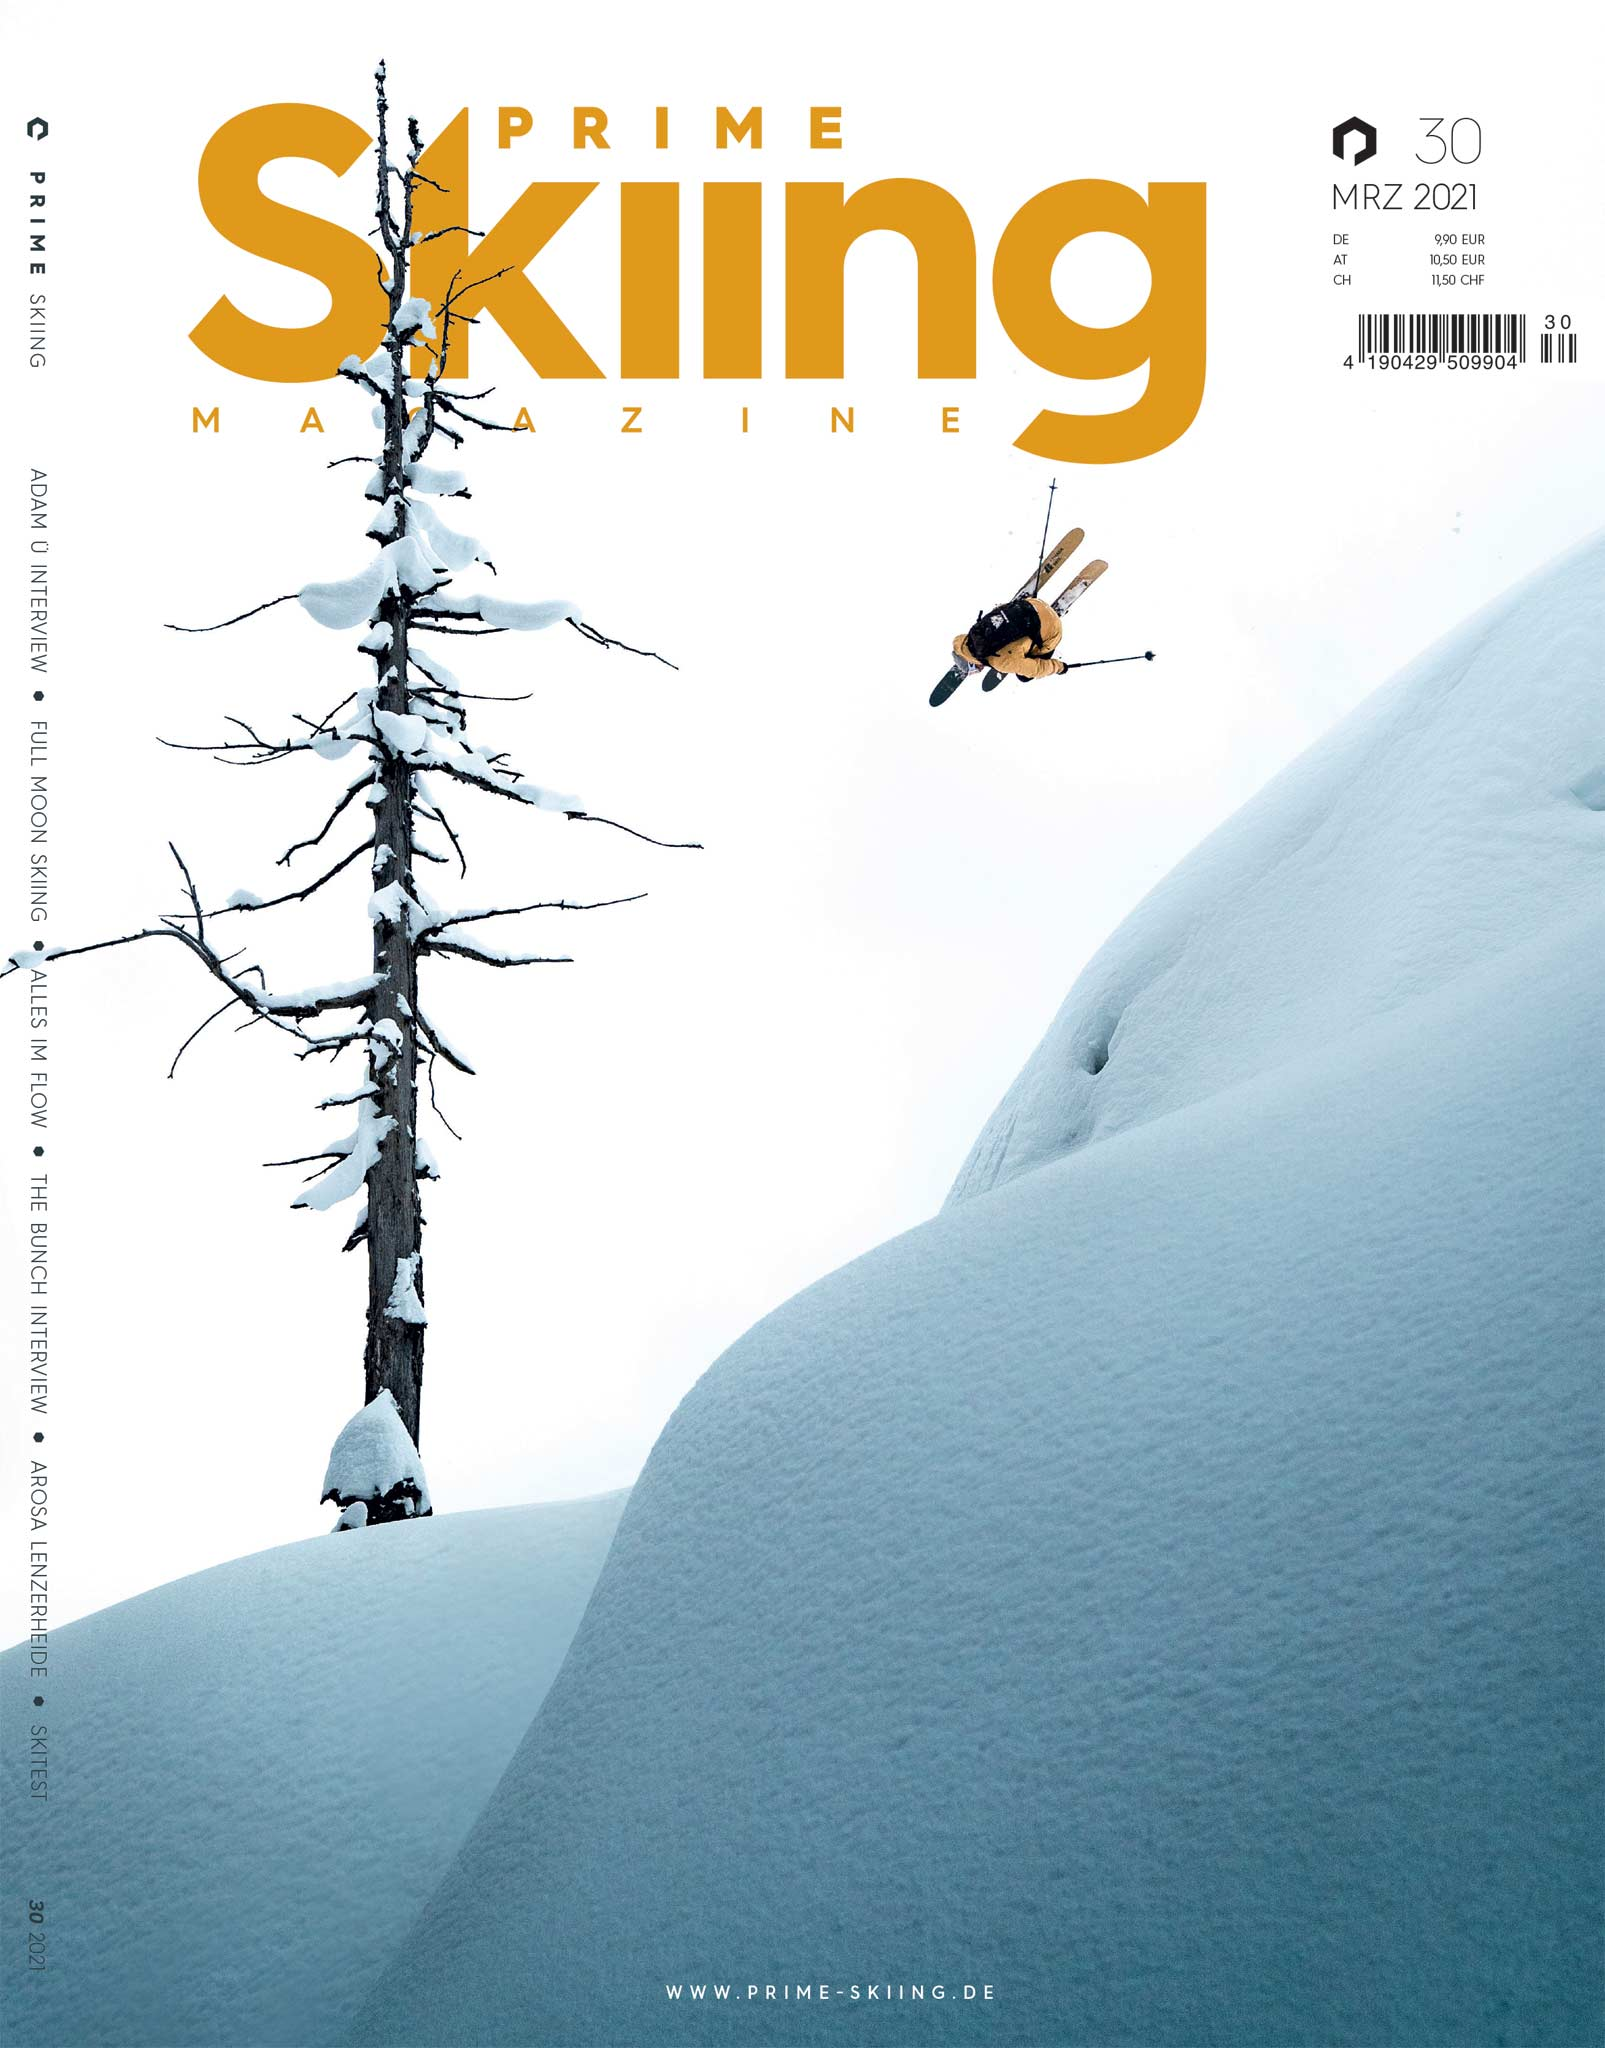 PRIME Skiing #30 – Cover